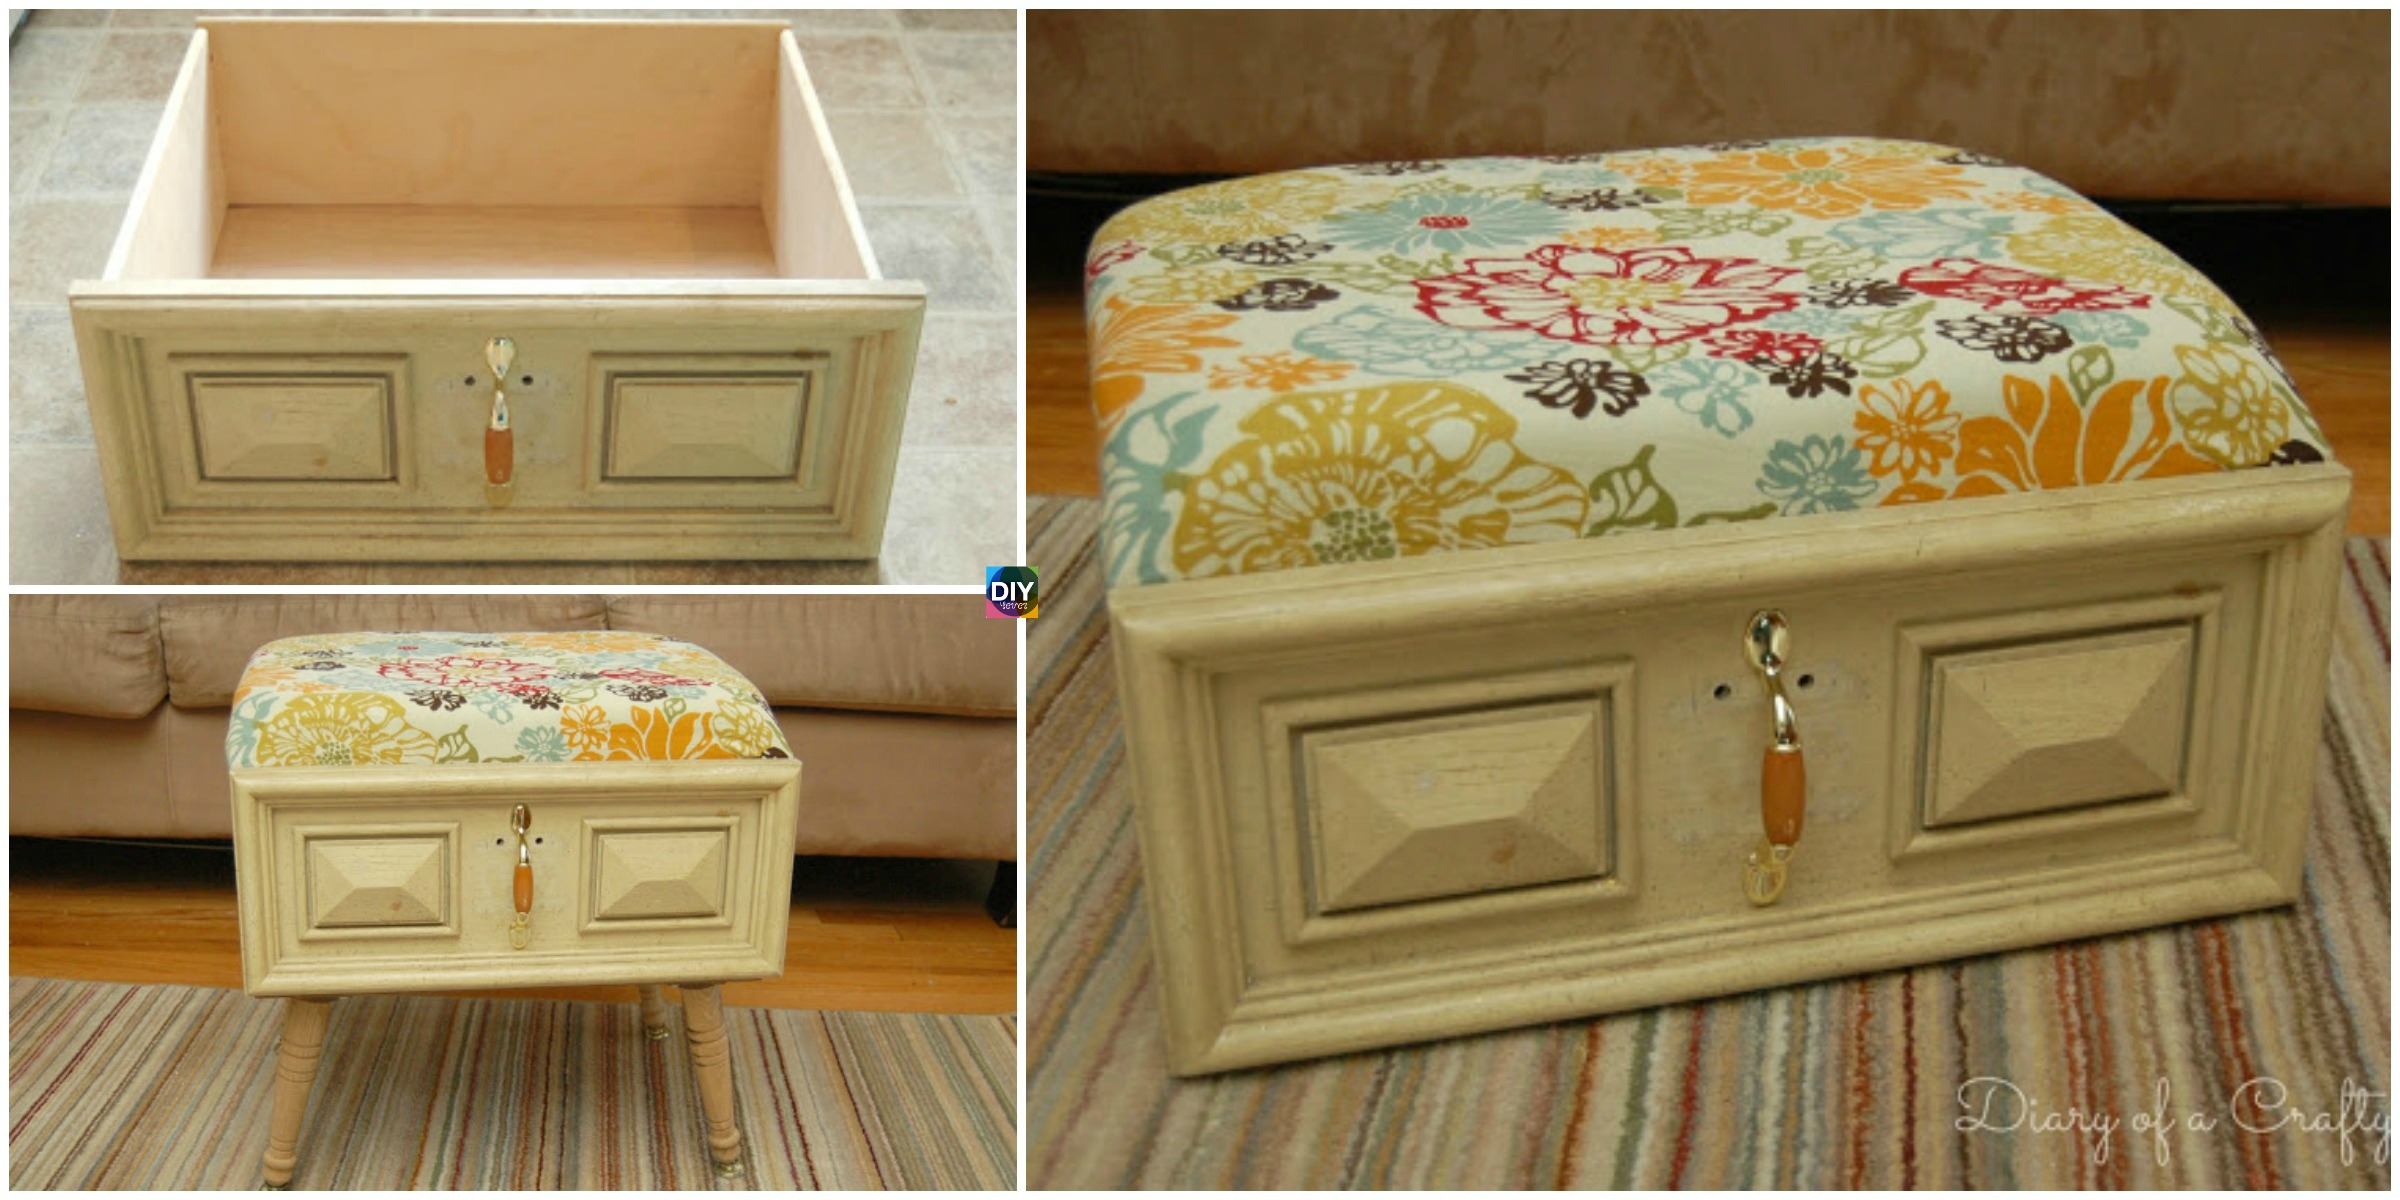 DIY Old Drawer Ottoman Step by Step Tutoiral